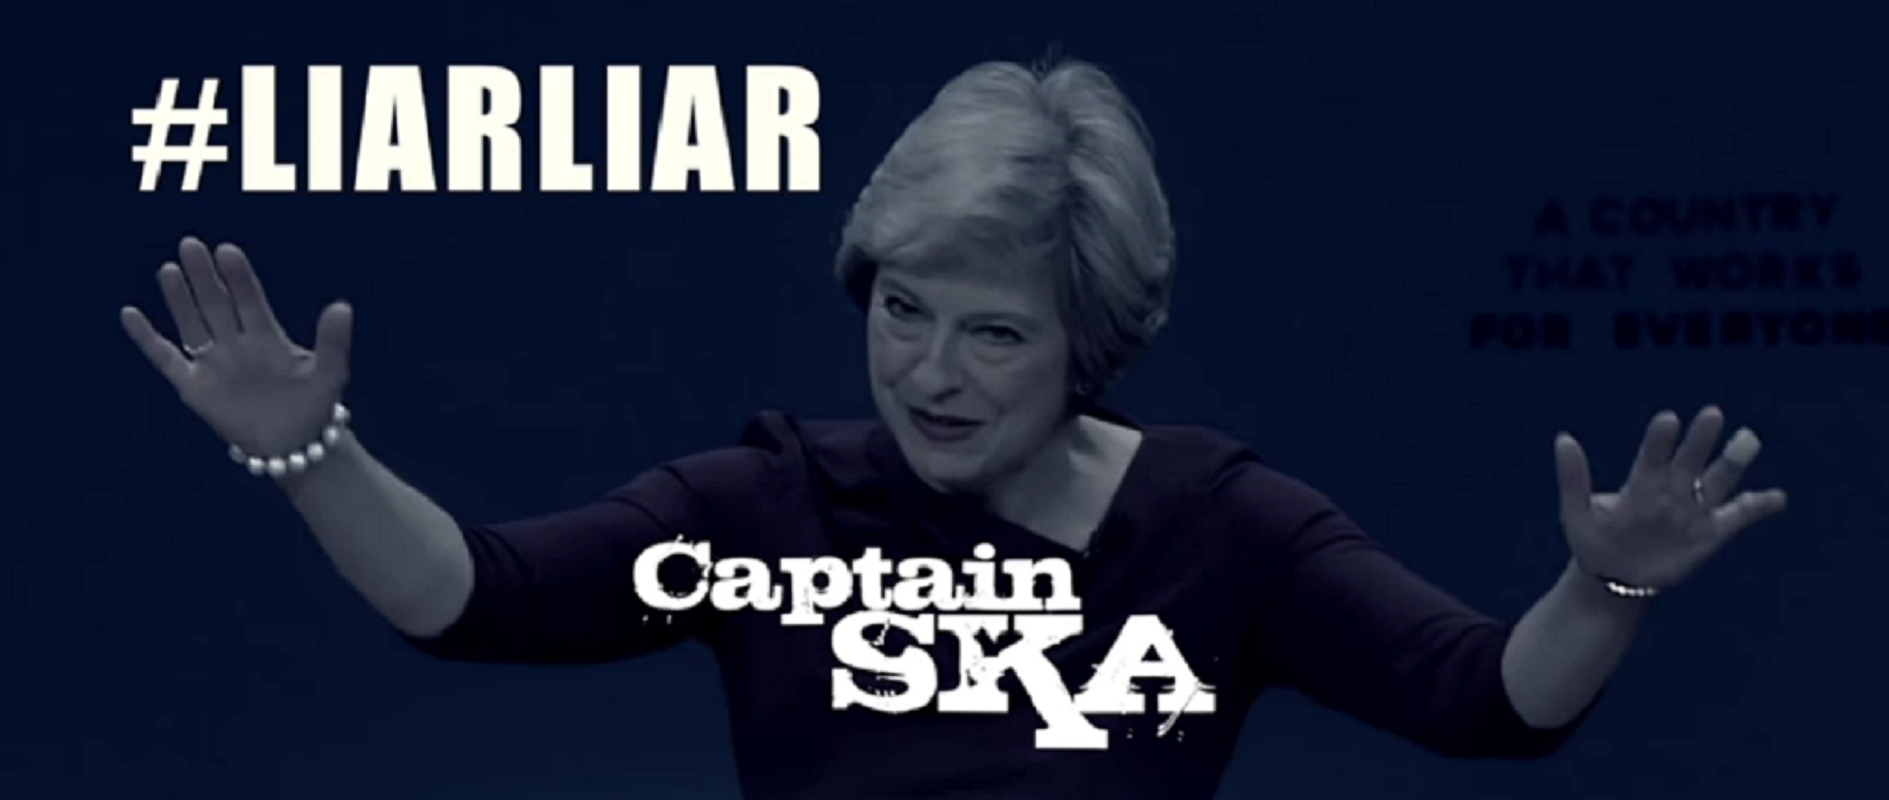 """Theresa May is a """"liar, liar"""" in this election's hit song"""